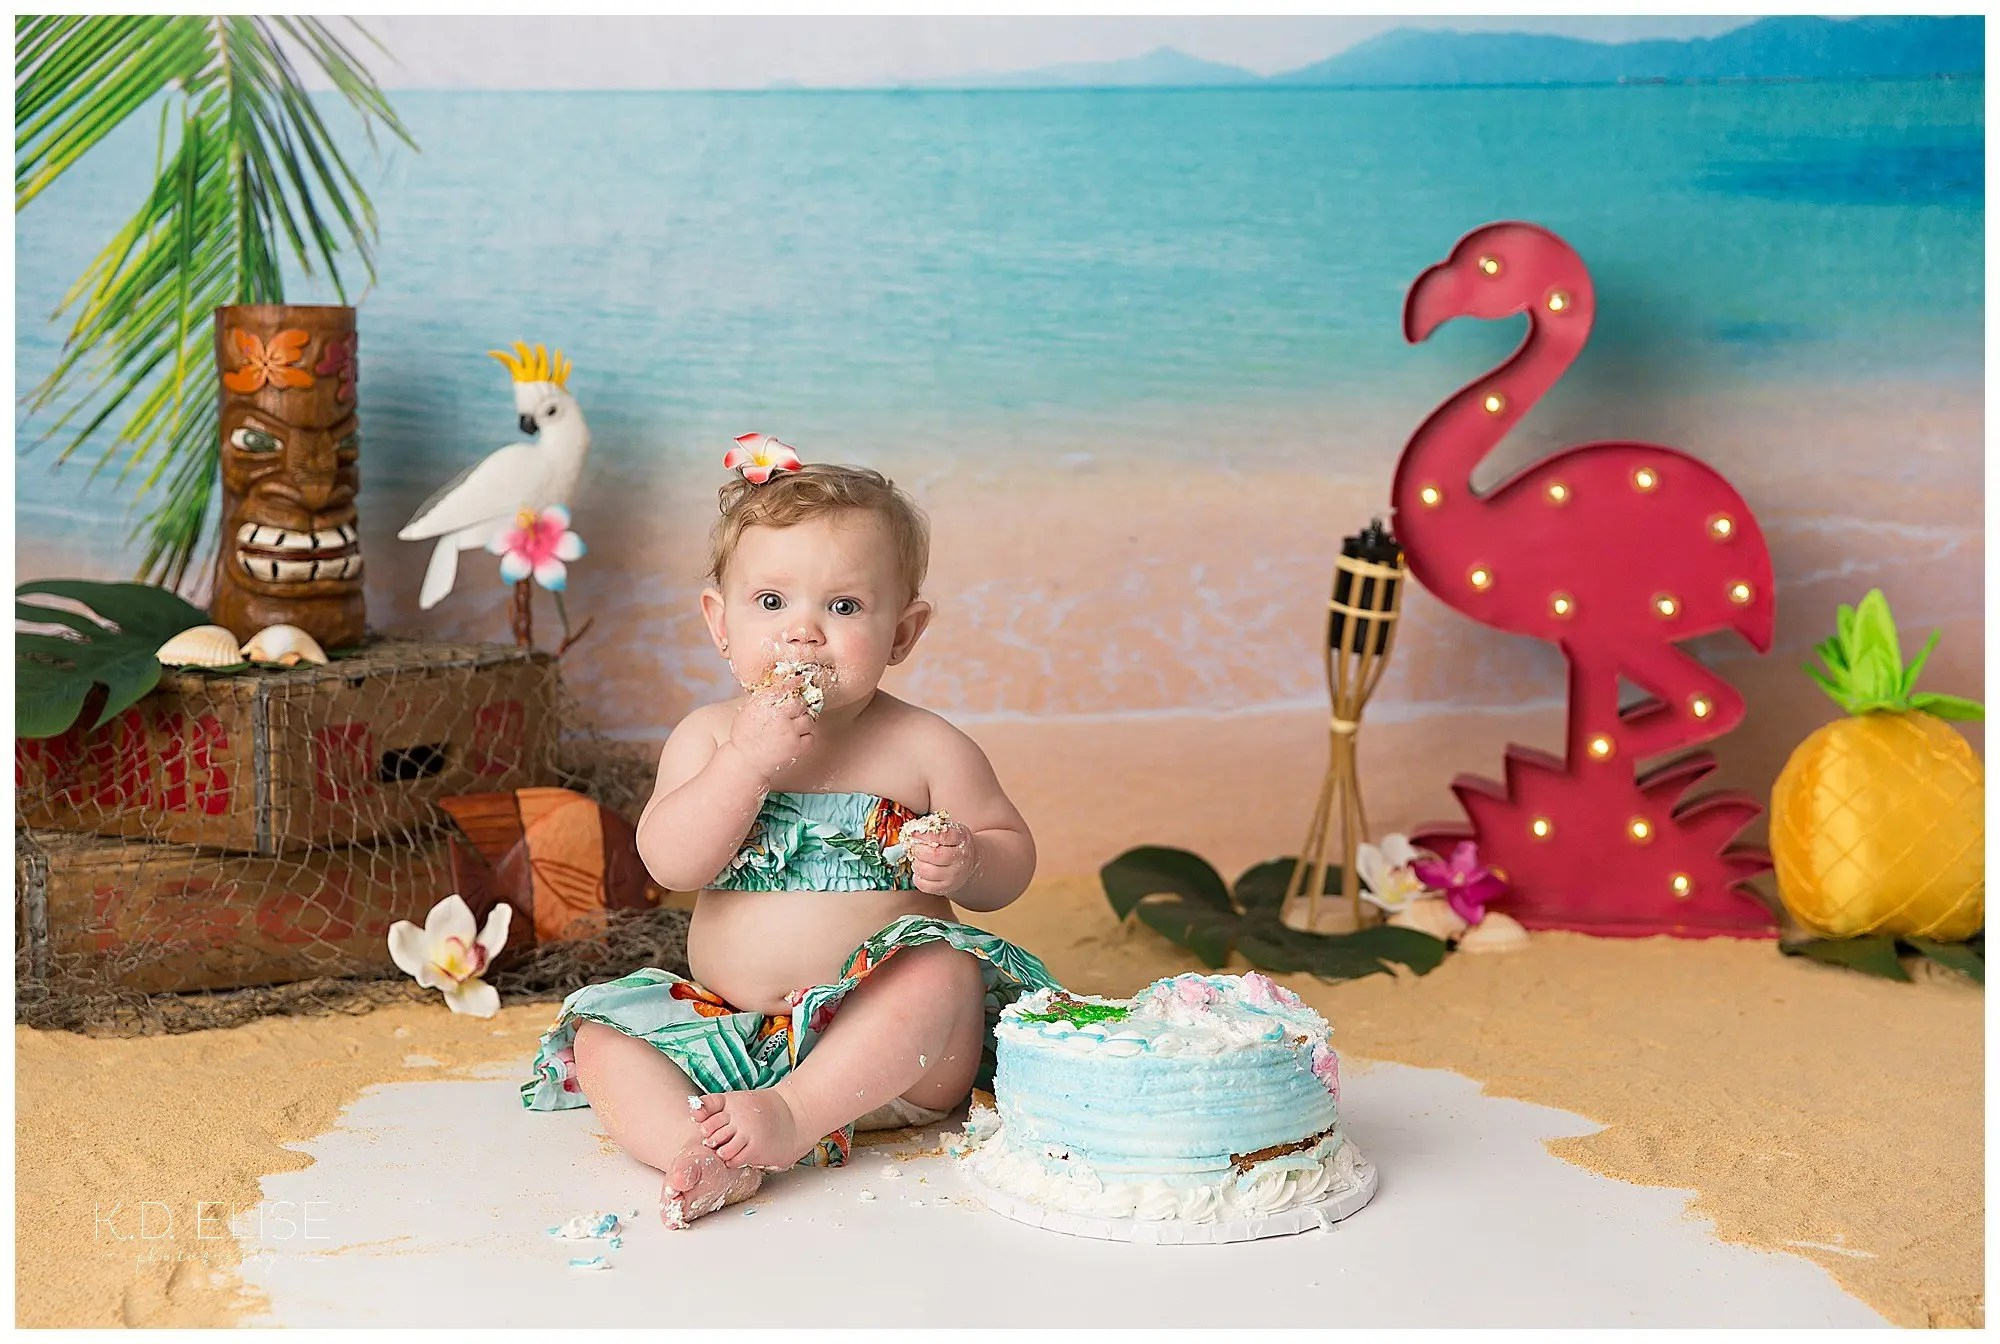 Luau themed cake smash with beach backdrop, flamingo, palm leaves, and flowers by Pueblo photographer K.D. Elise Photography.